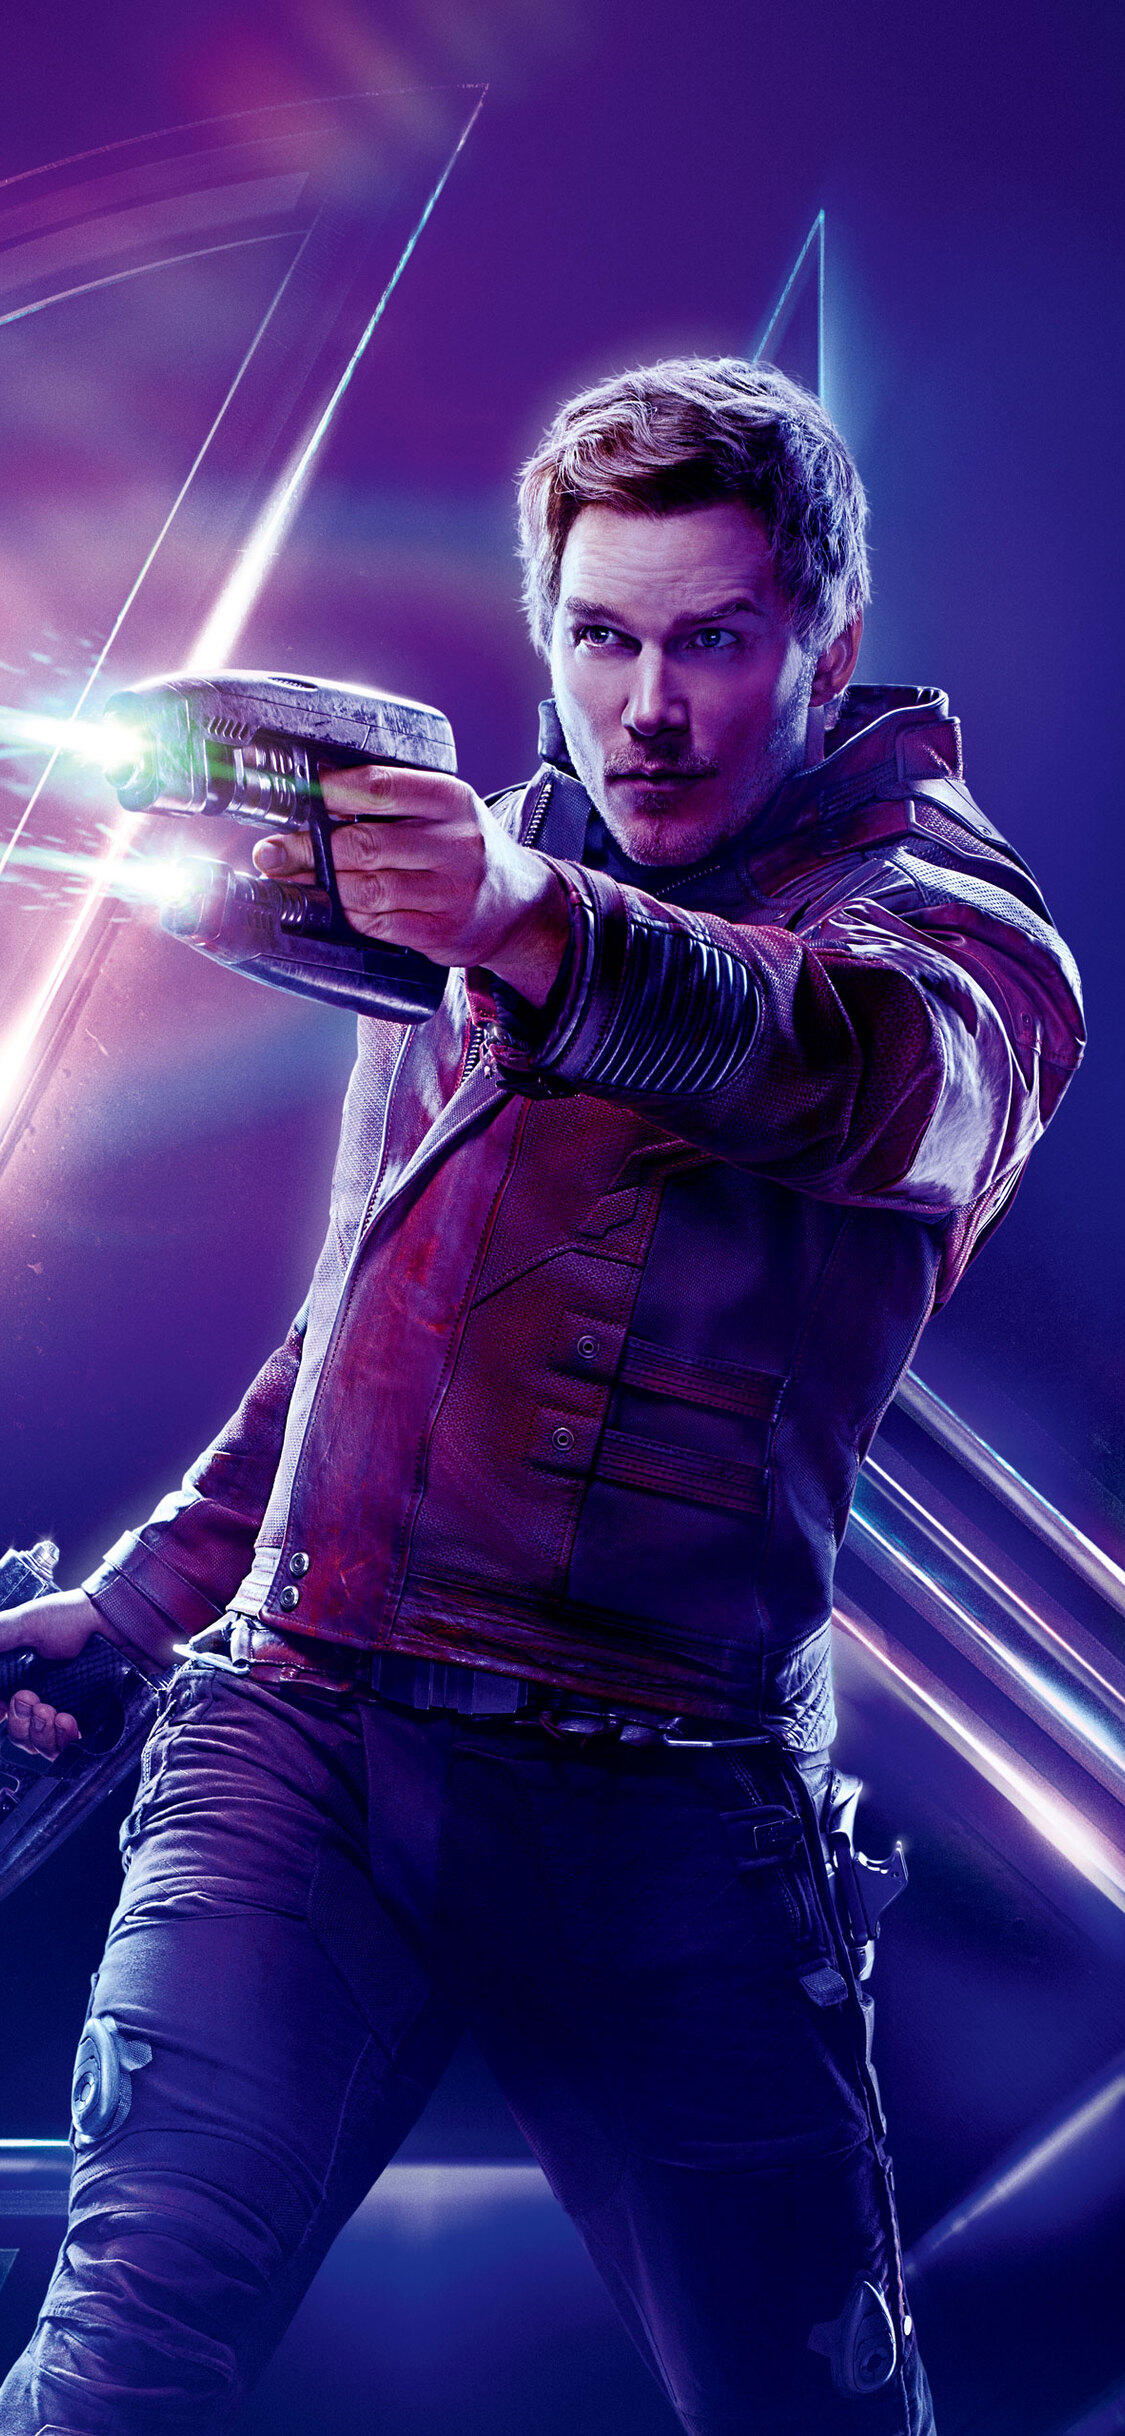 1125x2436 Star Lord In Avengers Infinity War 8k Poster Iphone Xs